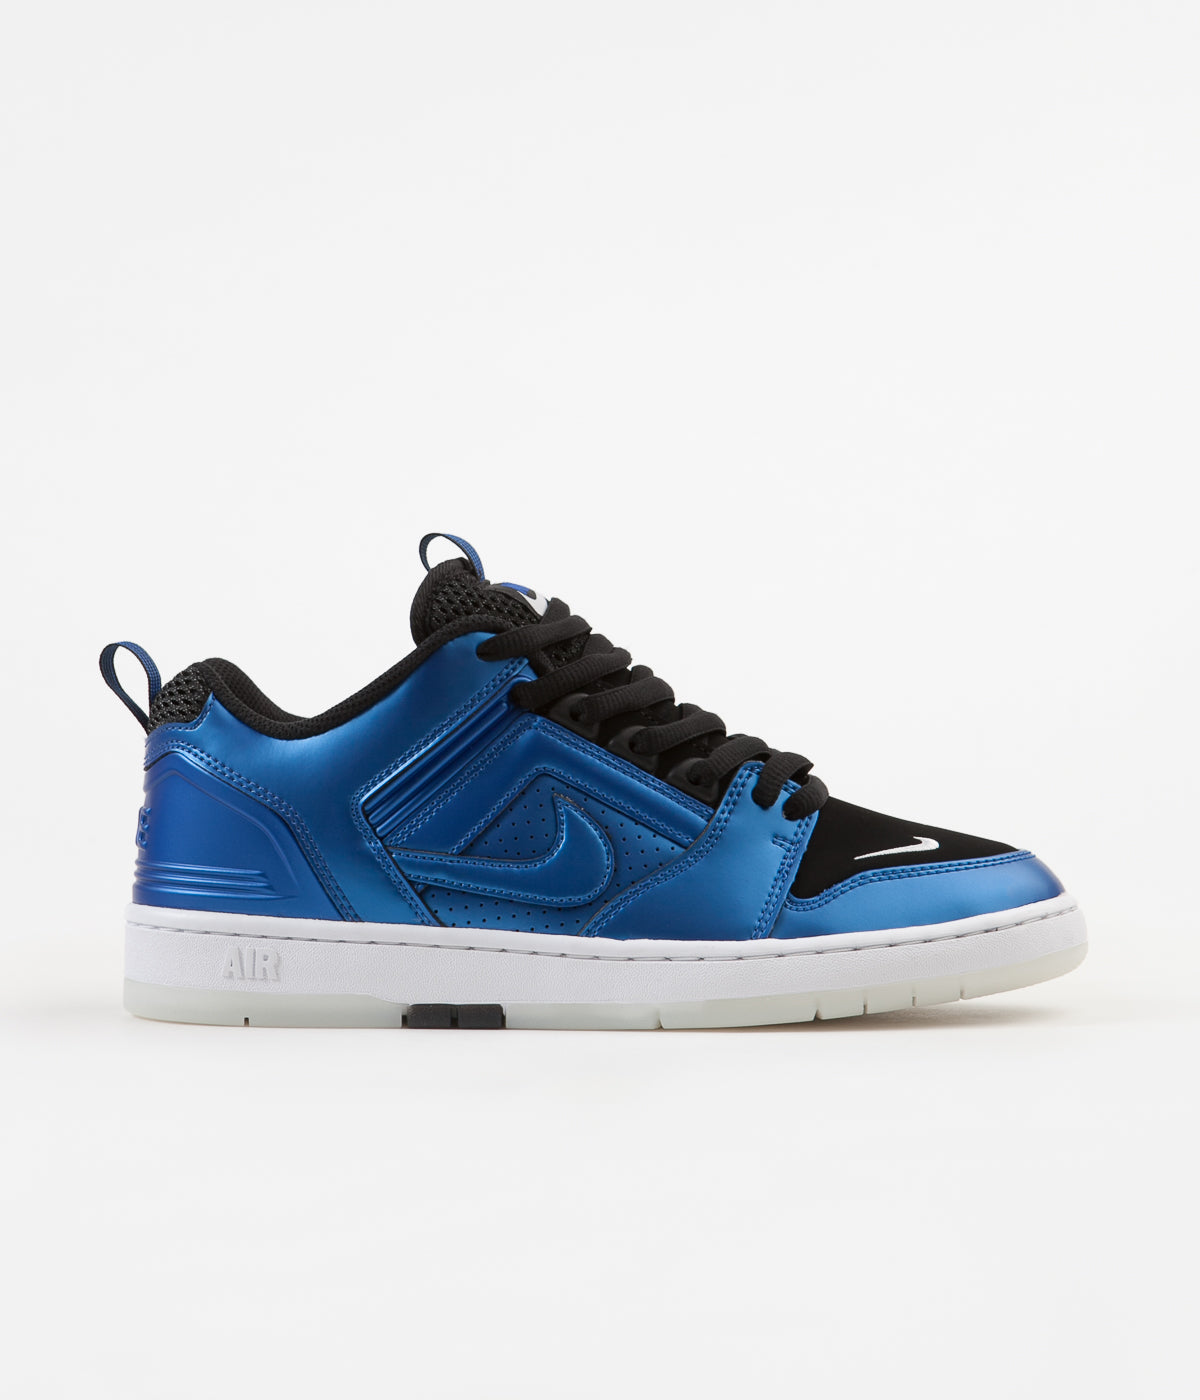 outlet store aaef7 7d329 Nike SB Air Force II Low Shoes - Intl Blue  Intl Blue - Black - White